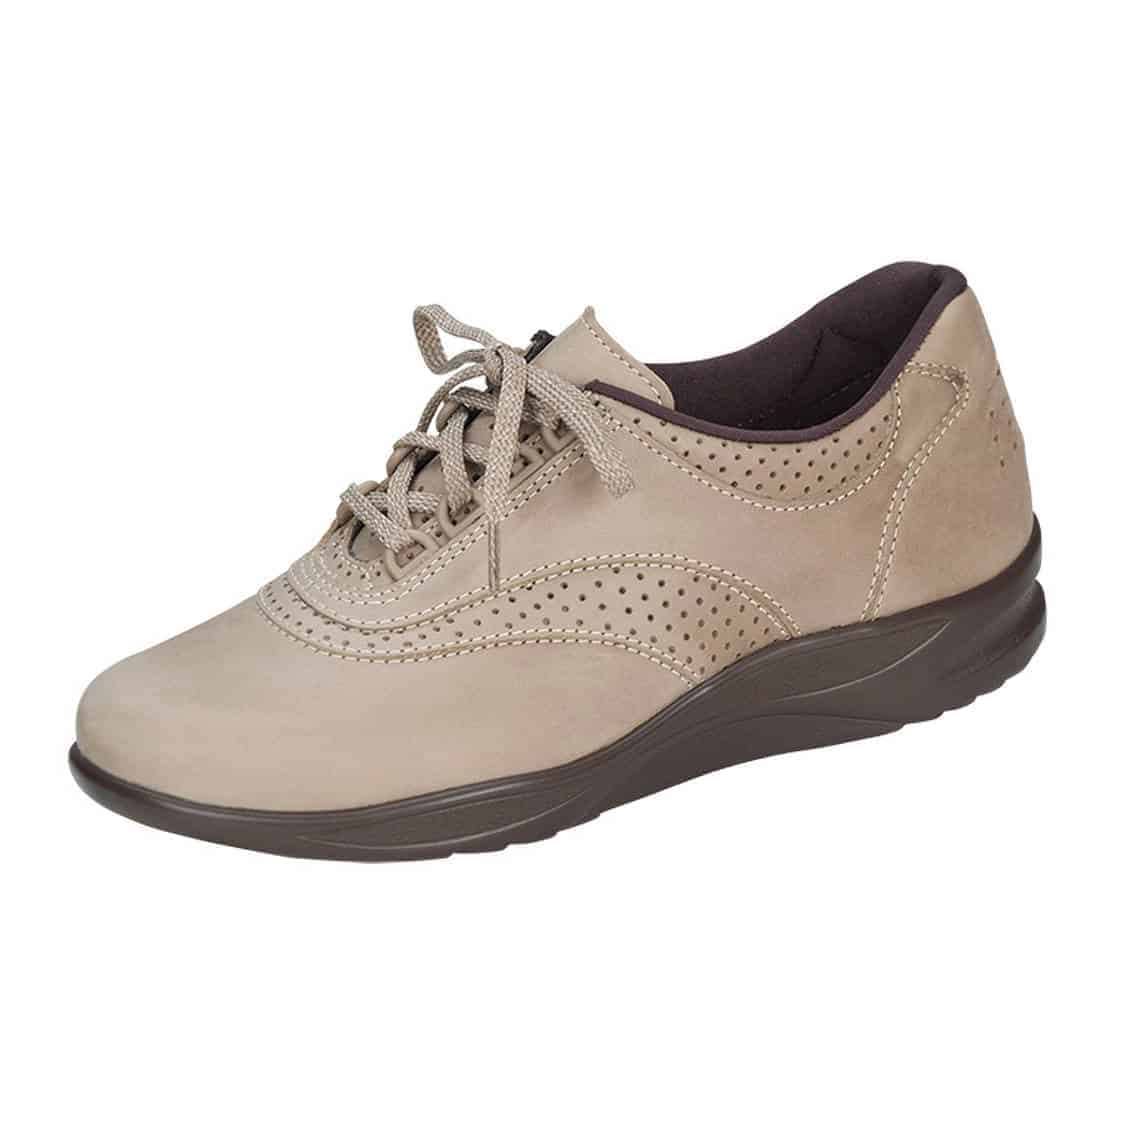 sas-womens-walk-easy-sage-nubuck-2380-228-2